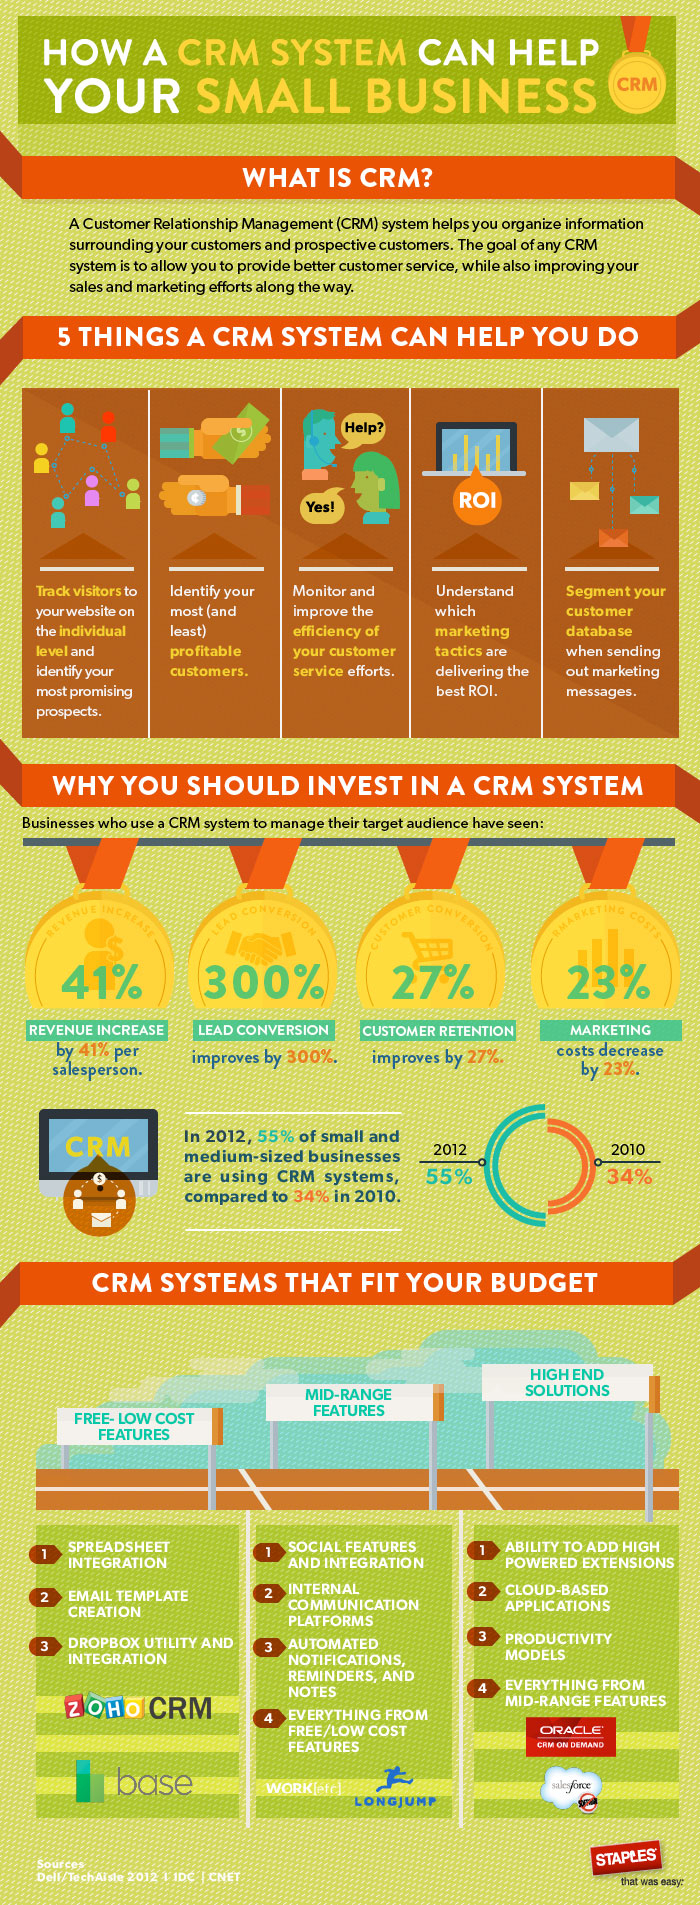 CRM Software - Quintessence for Successful Business Management [Infographic]